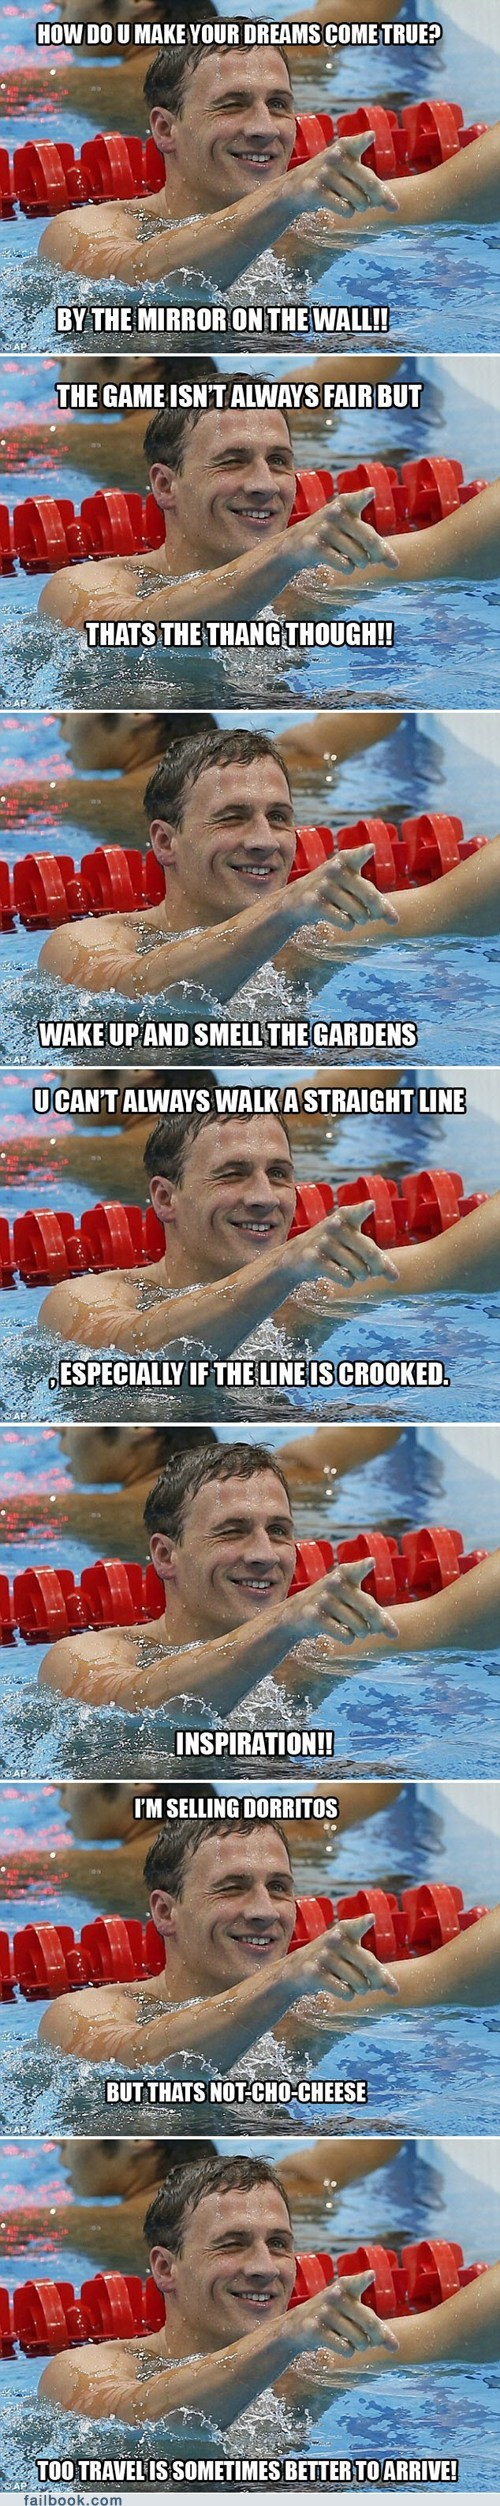 athlete failbook g rated Lochte olympics ryan lochte sports tweet twitter - 6492176384